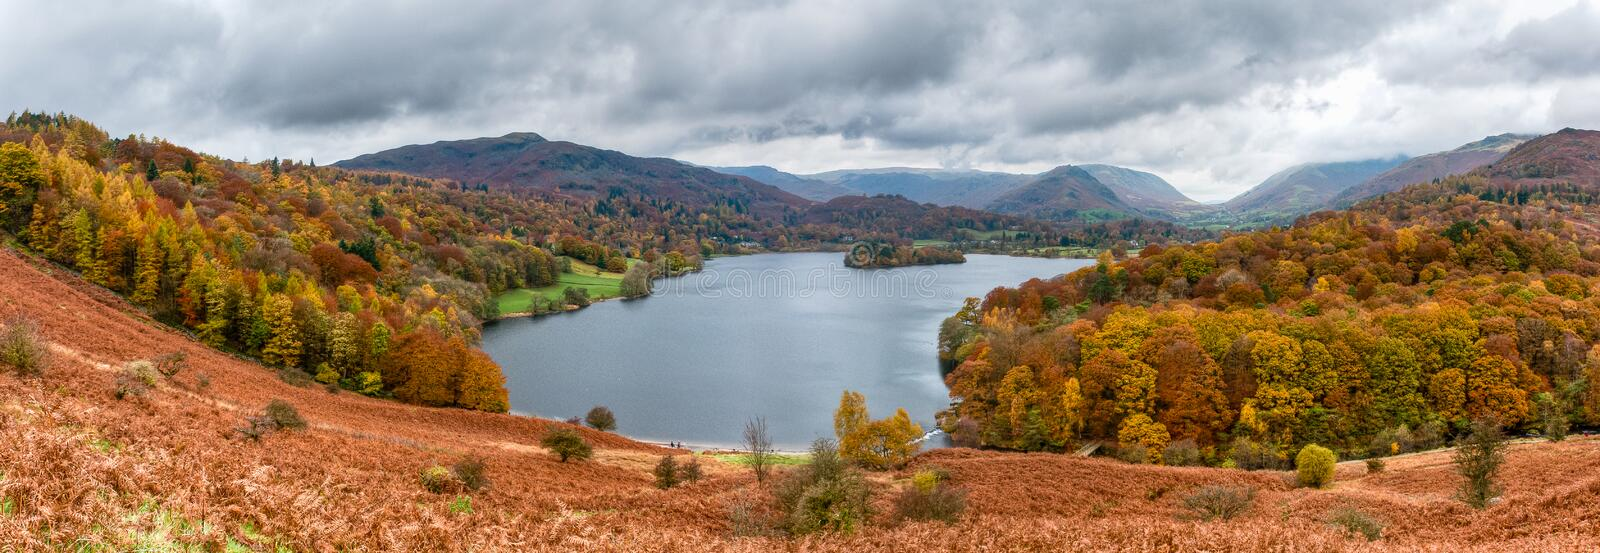 Autumn in the Lake District, UK. royalty free stock photos